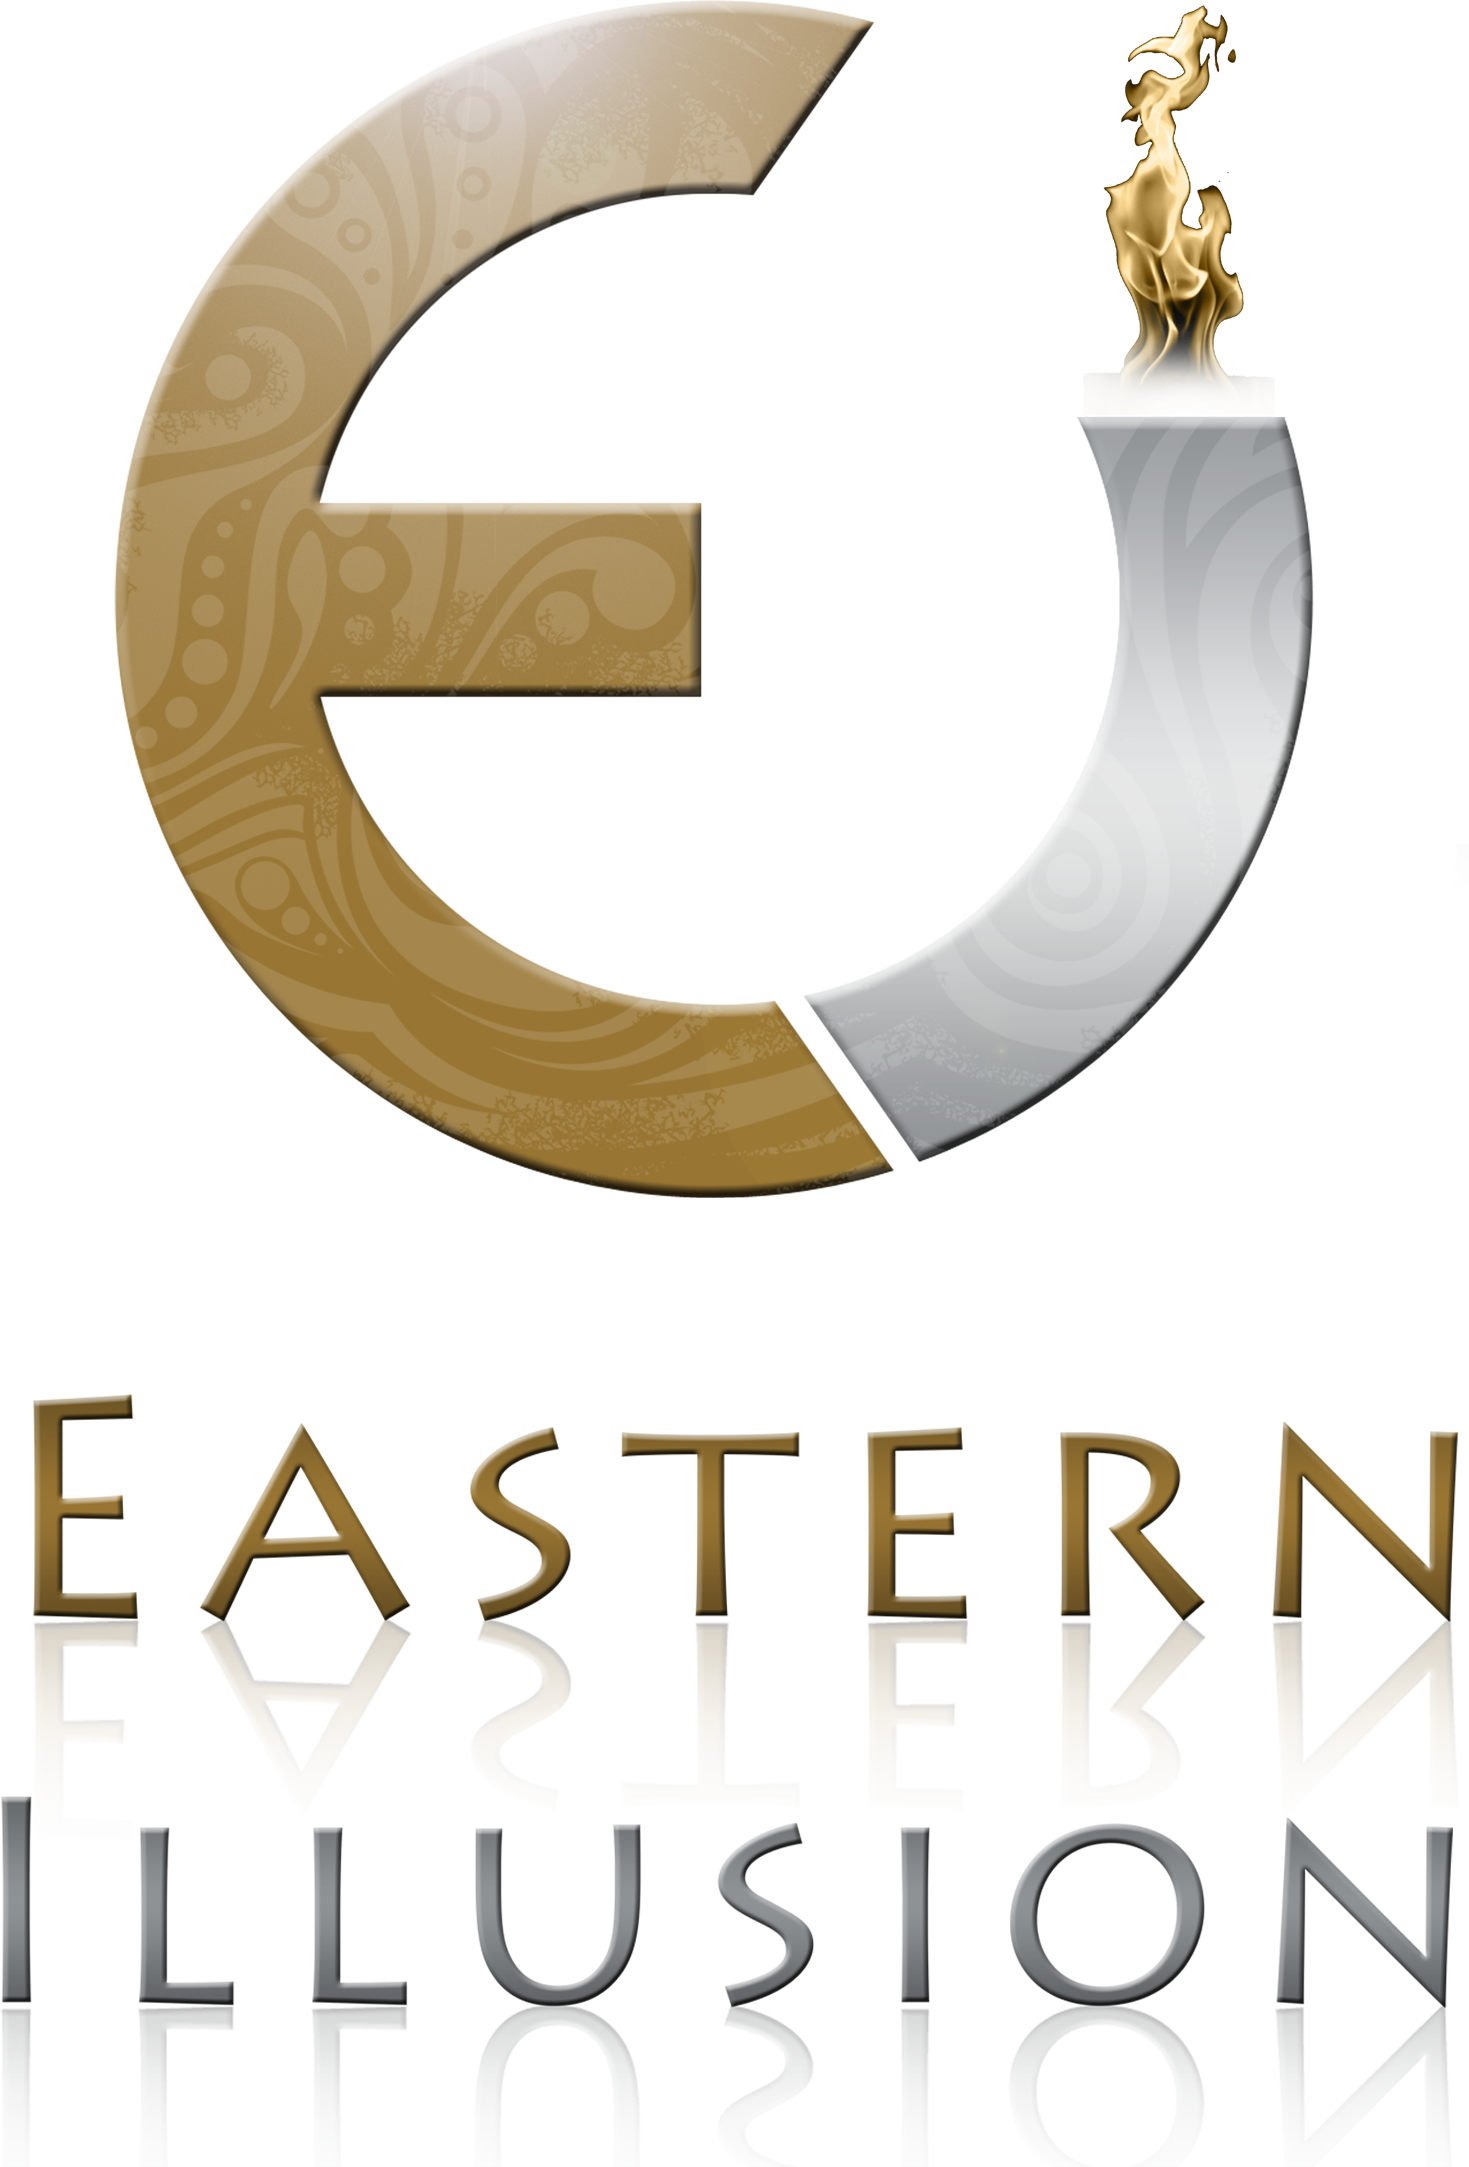 Eastern Illusion -  Live Asian Music and Events Management Company